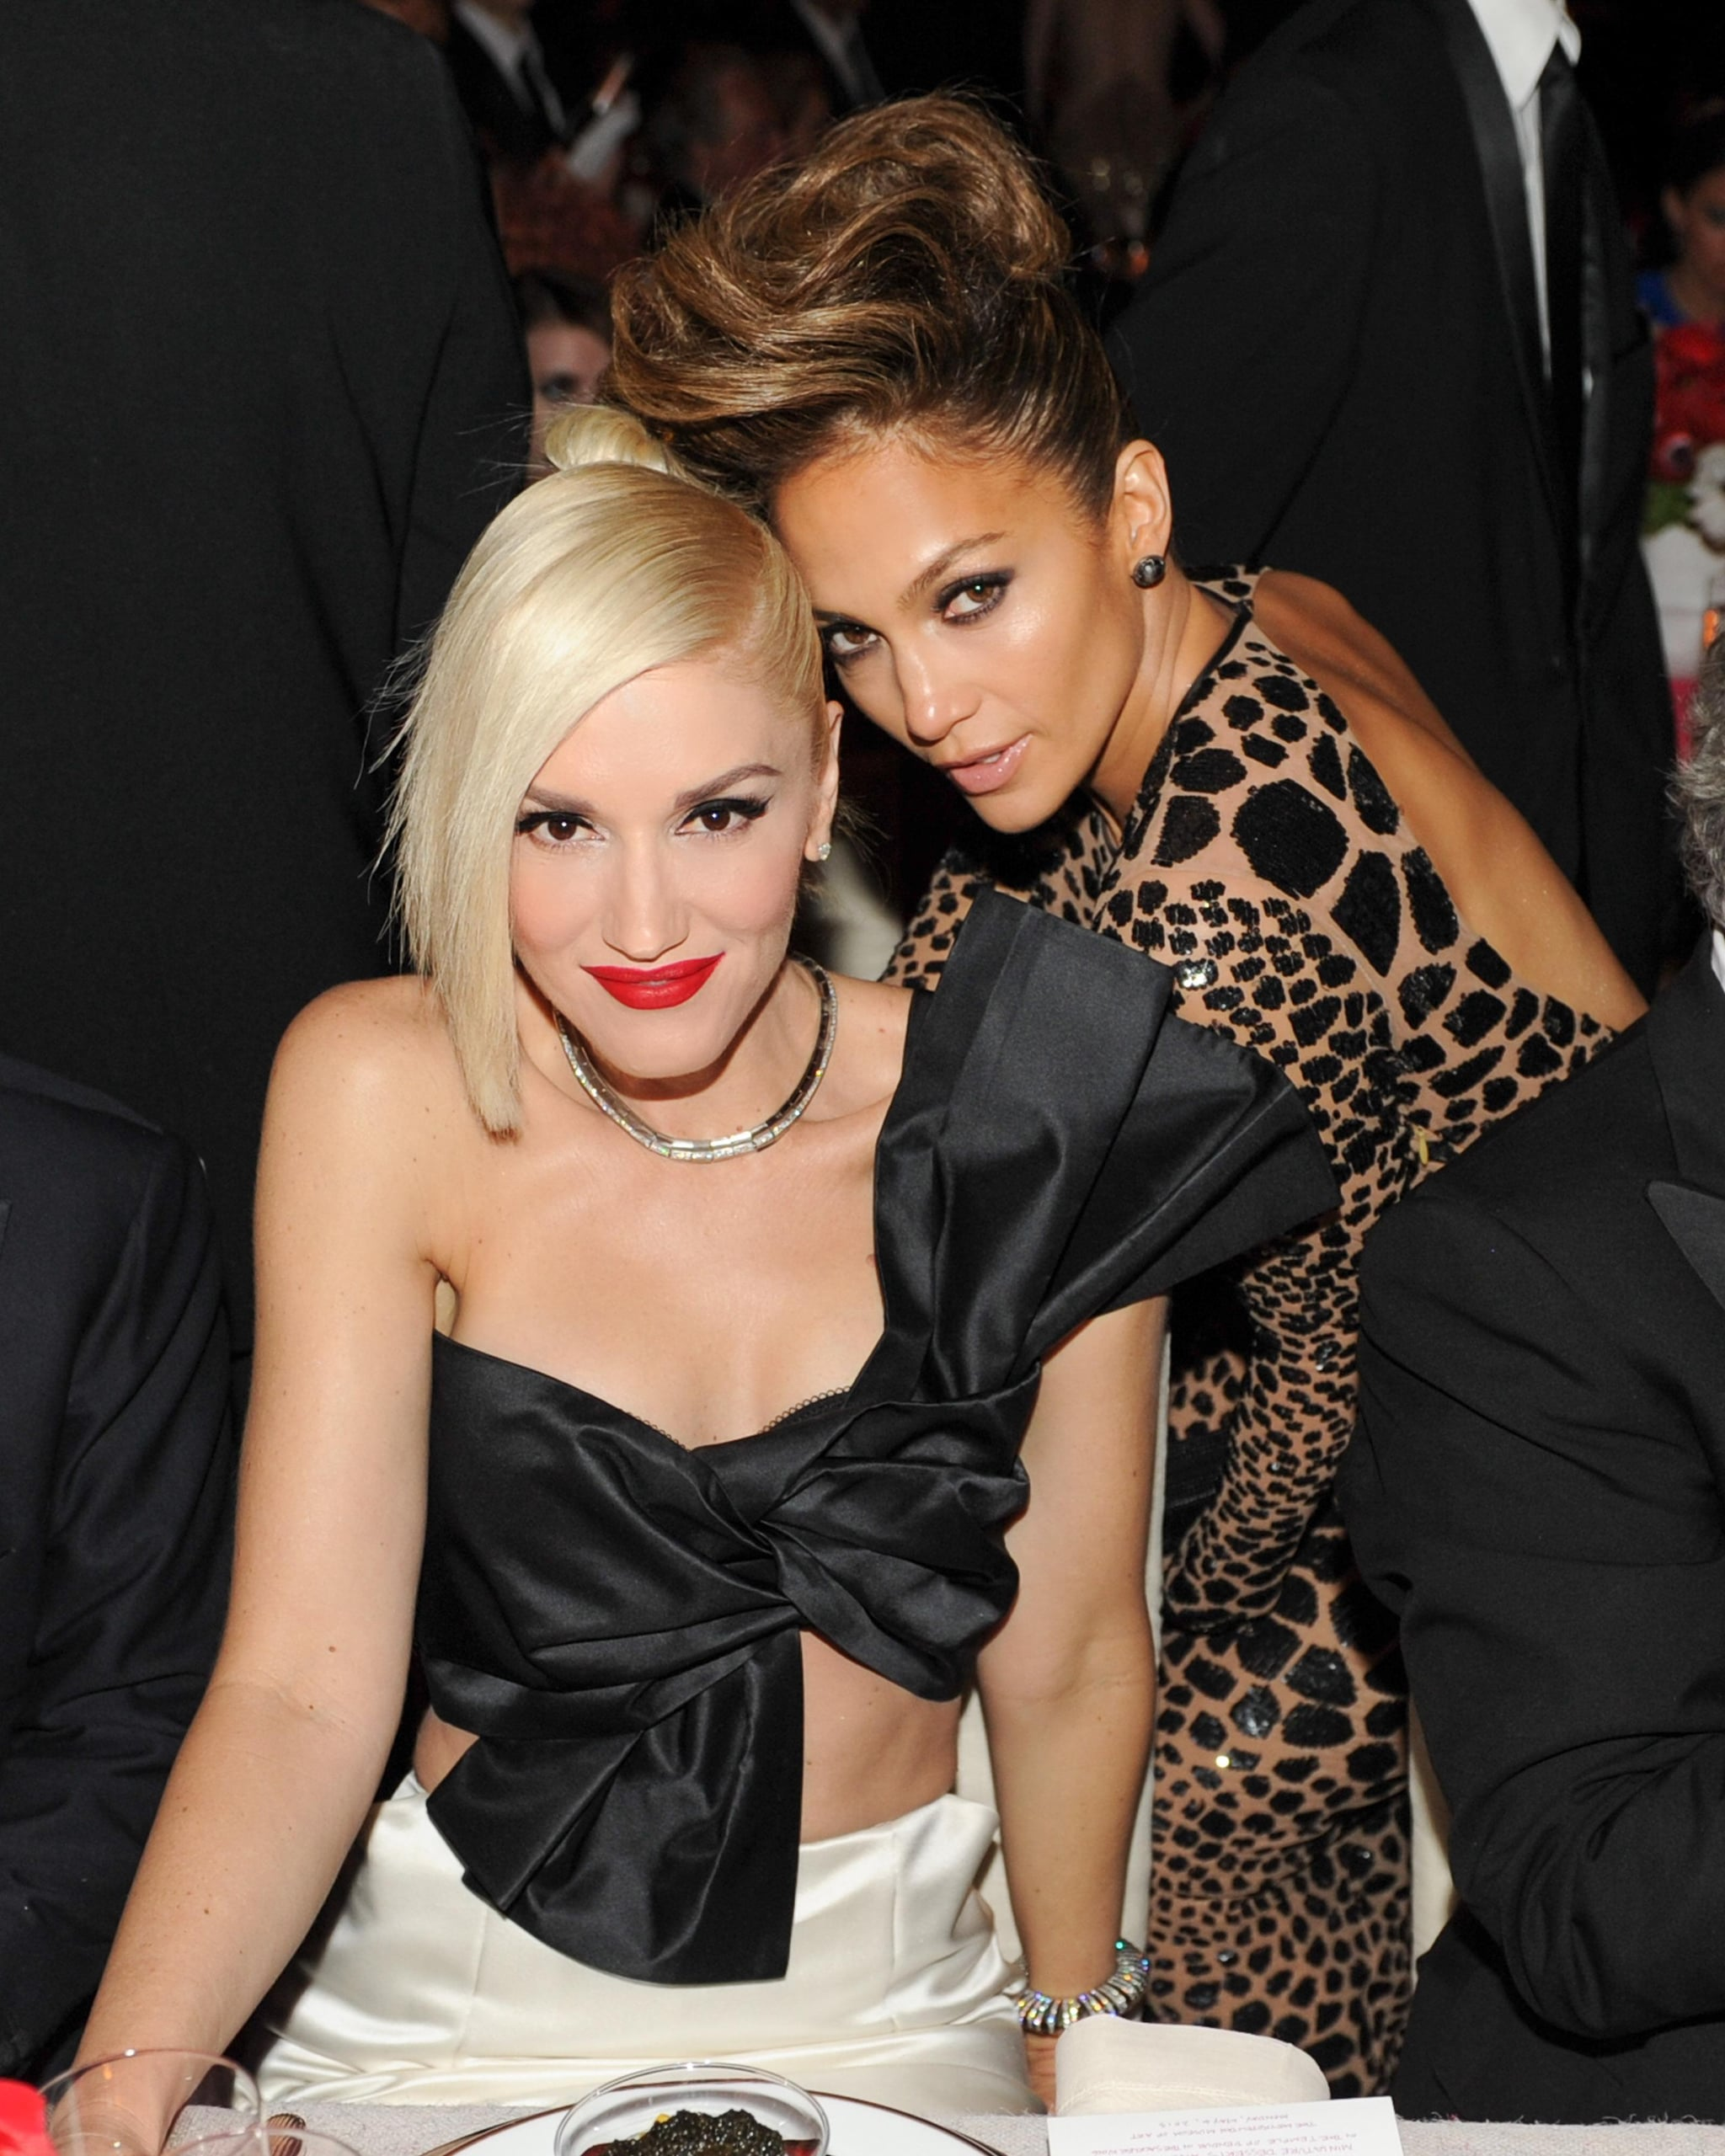 Gwen Stefani and Jennifer Lopez posed together inside the Met Gala.  Source: Billy Farrell/BFANYC.com